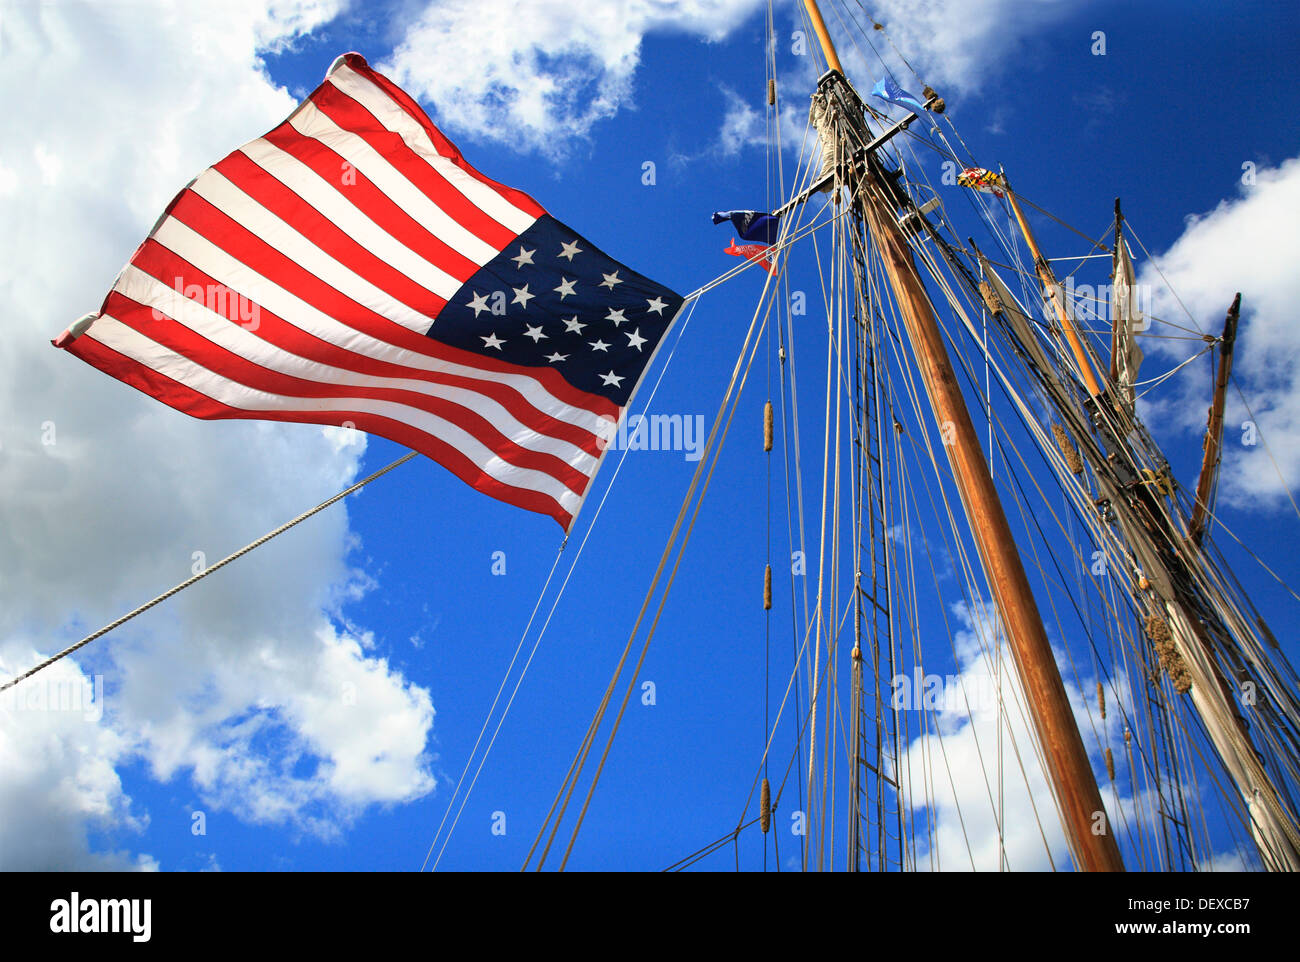 An American Flag, Mast And Rigging Against A Deep Blue Cloudy Sky During The Perry 200 Commemoration, Erie Pennsylvania, USA - Stock Image